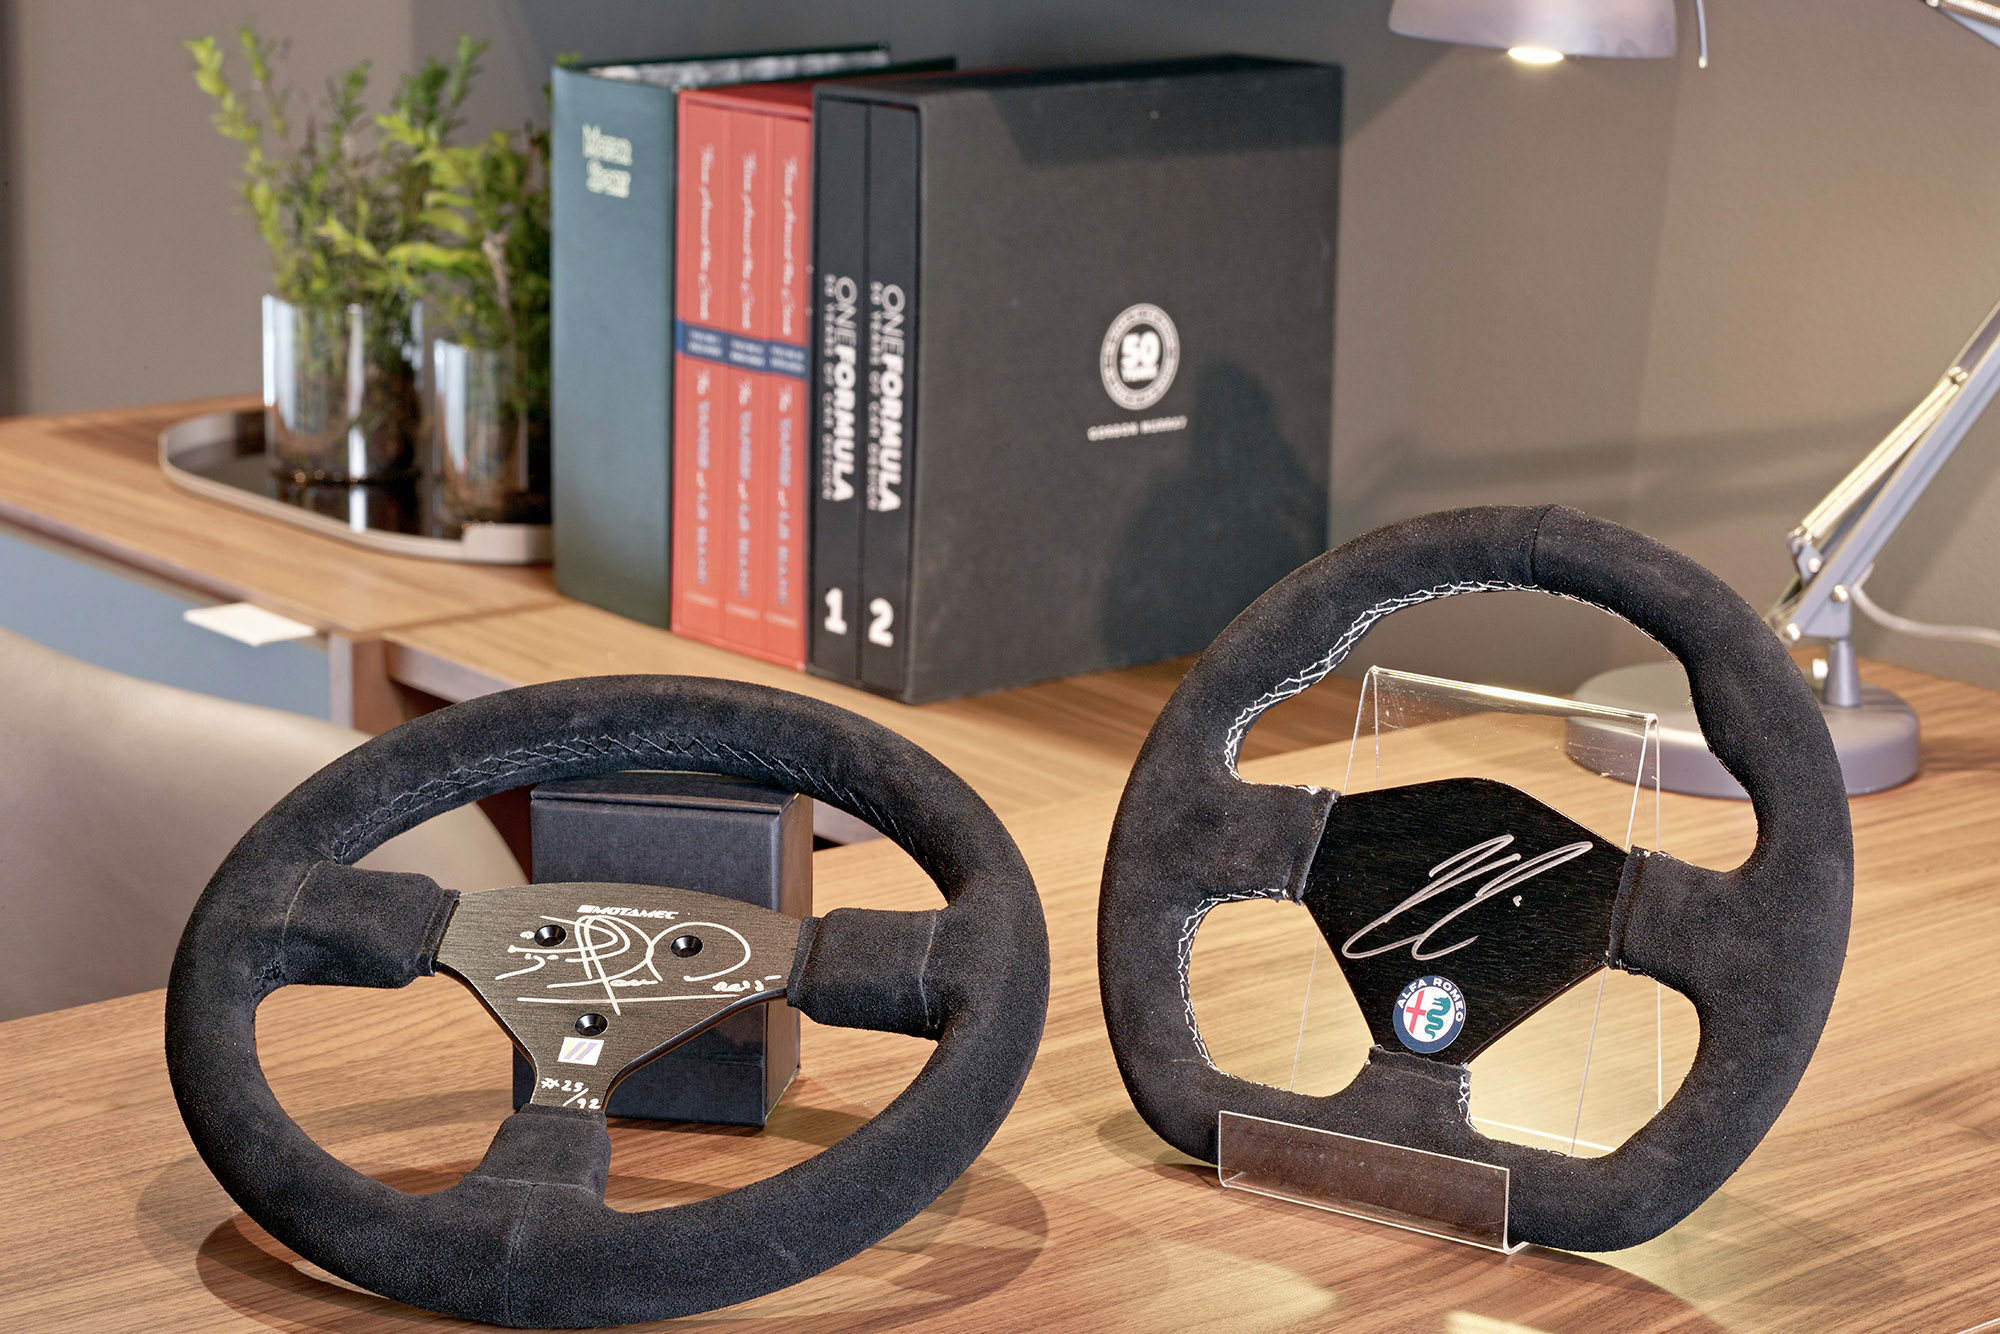 Unusual Christmas gifts for motor sport fans